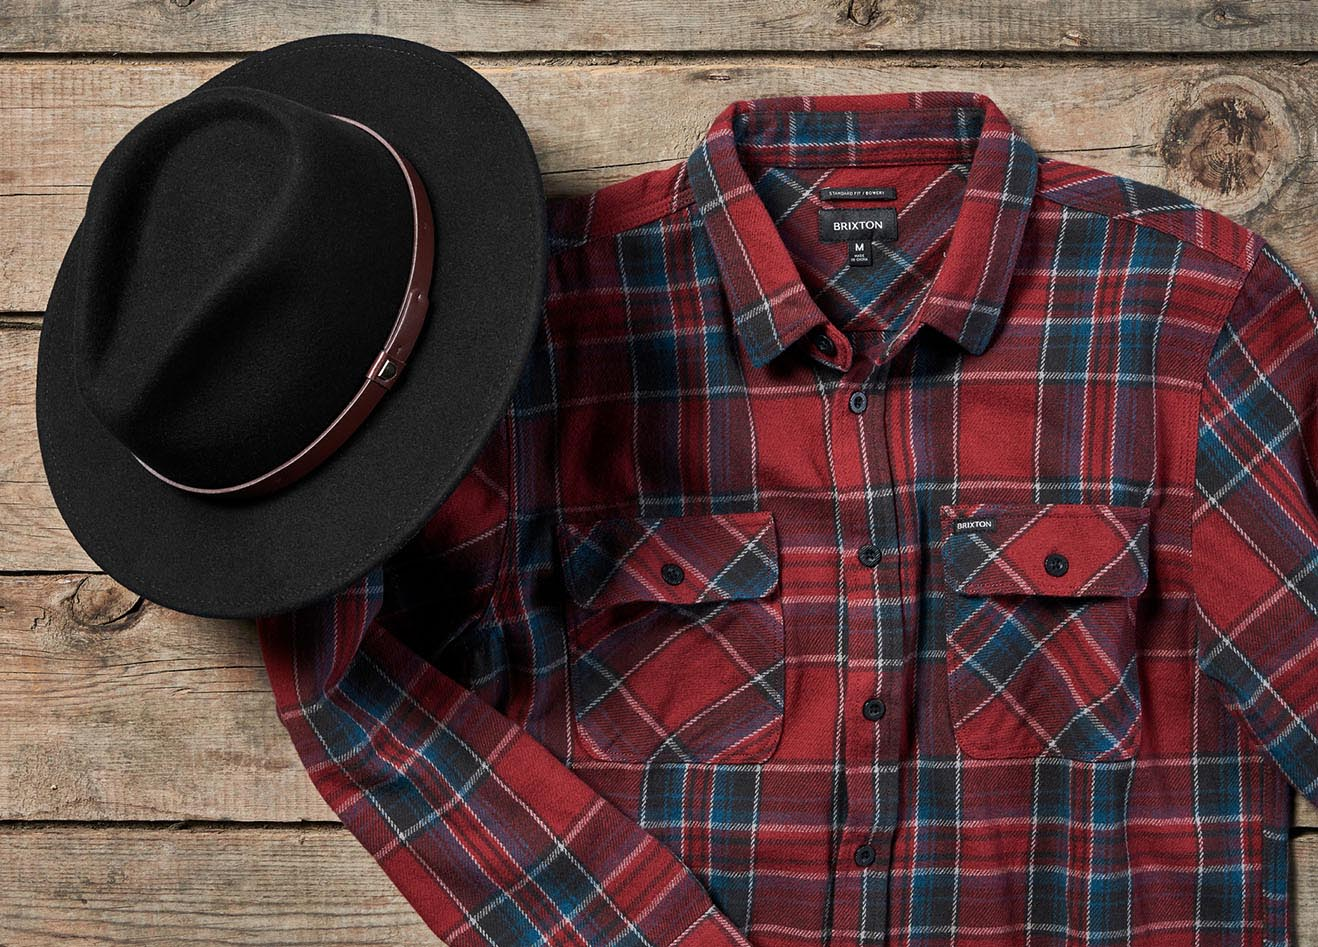 The Outdoorsman Gifts